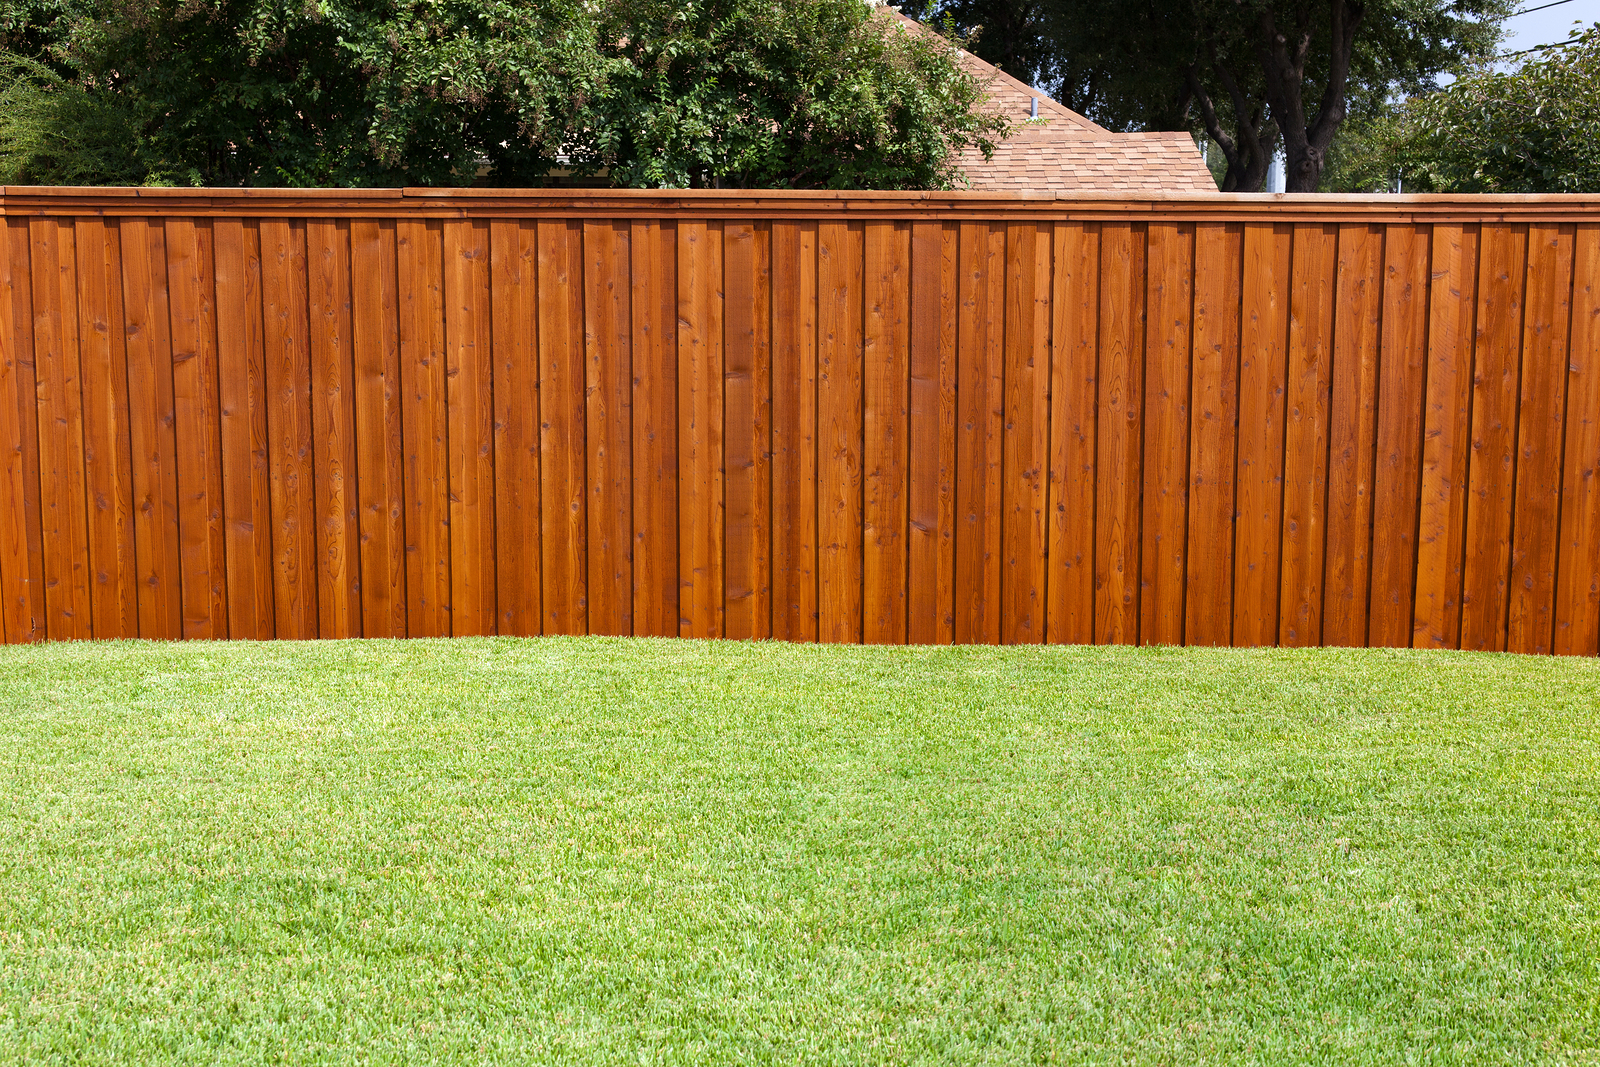 6 Reasons To Install A Fence Around Your Backyard Themocracy pertaining to 13 Clever Initiatives of How to Make Backyard Fencing Cost